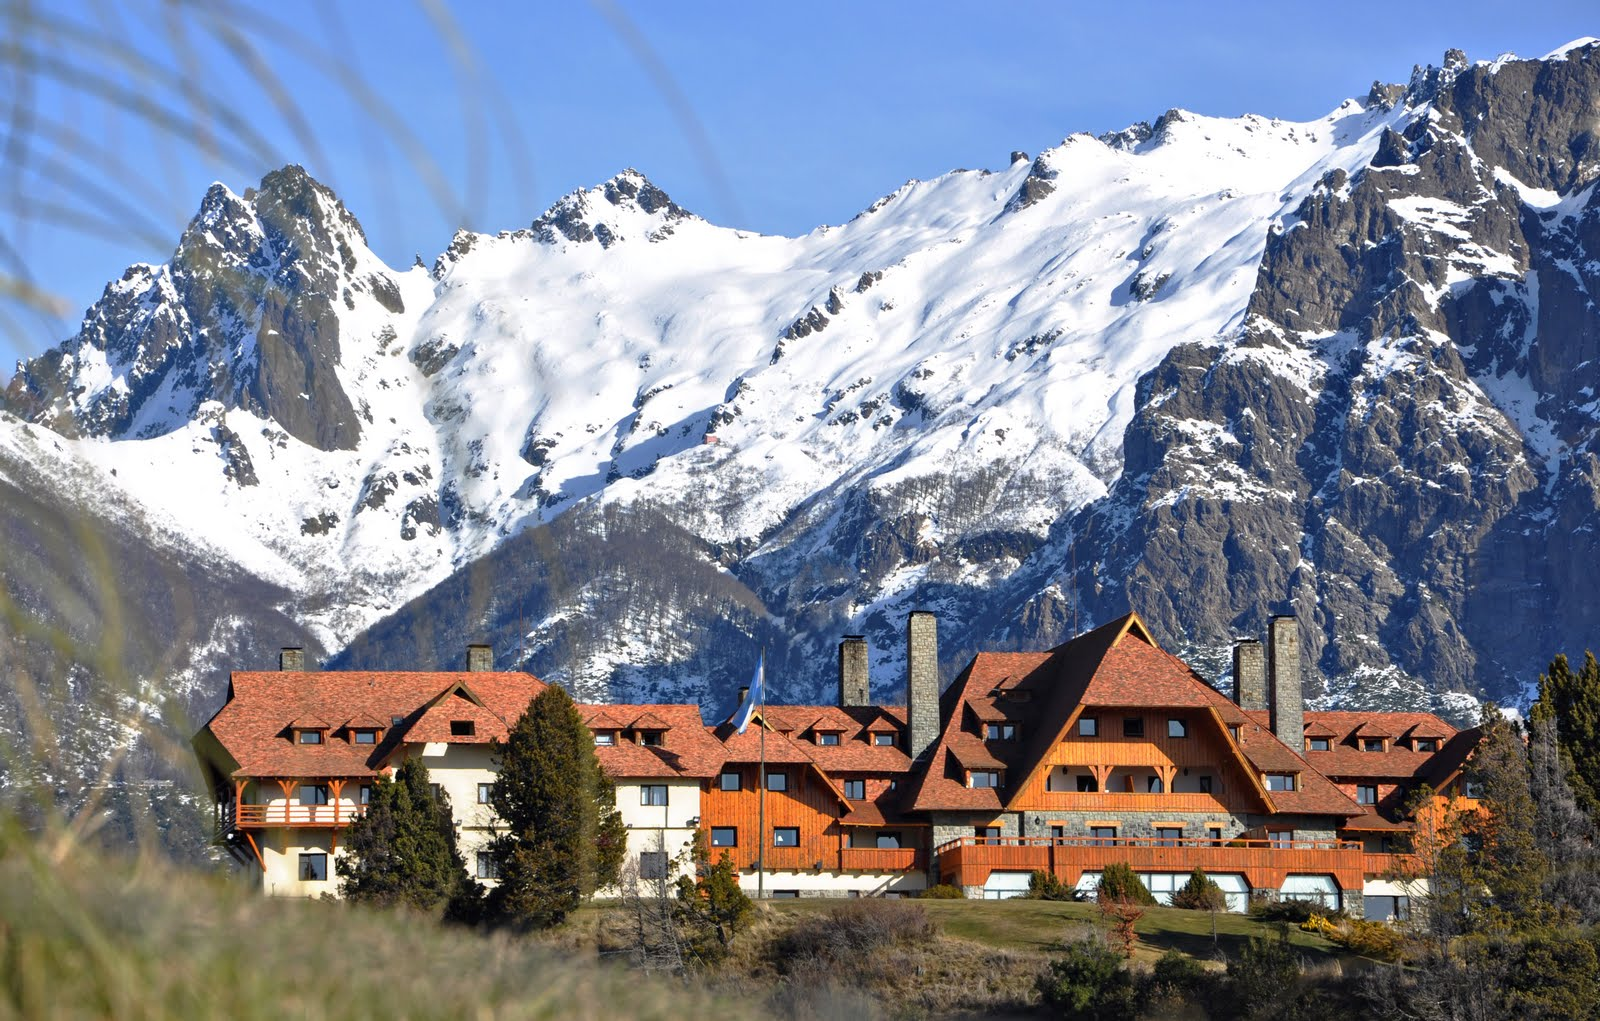 Off The Beaten Path A Photo Tour Of Bariloche Argentina The Journal Alps Meters